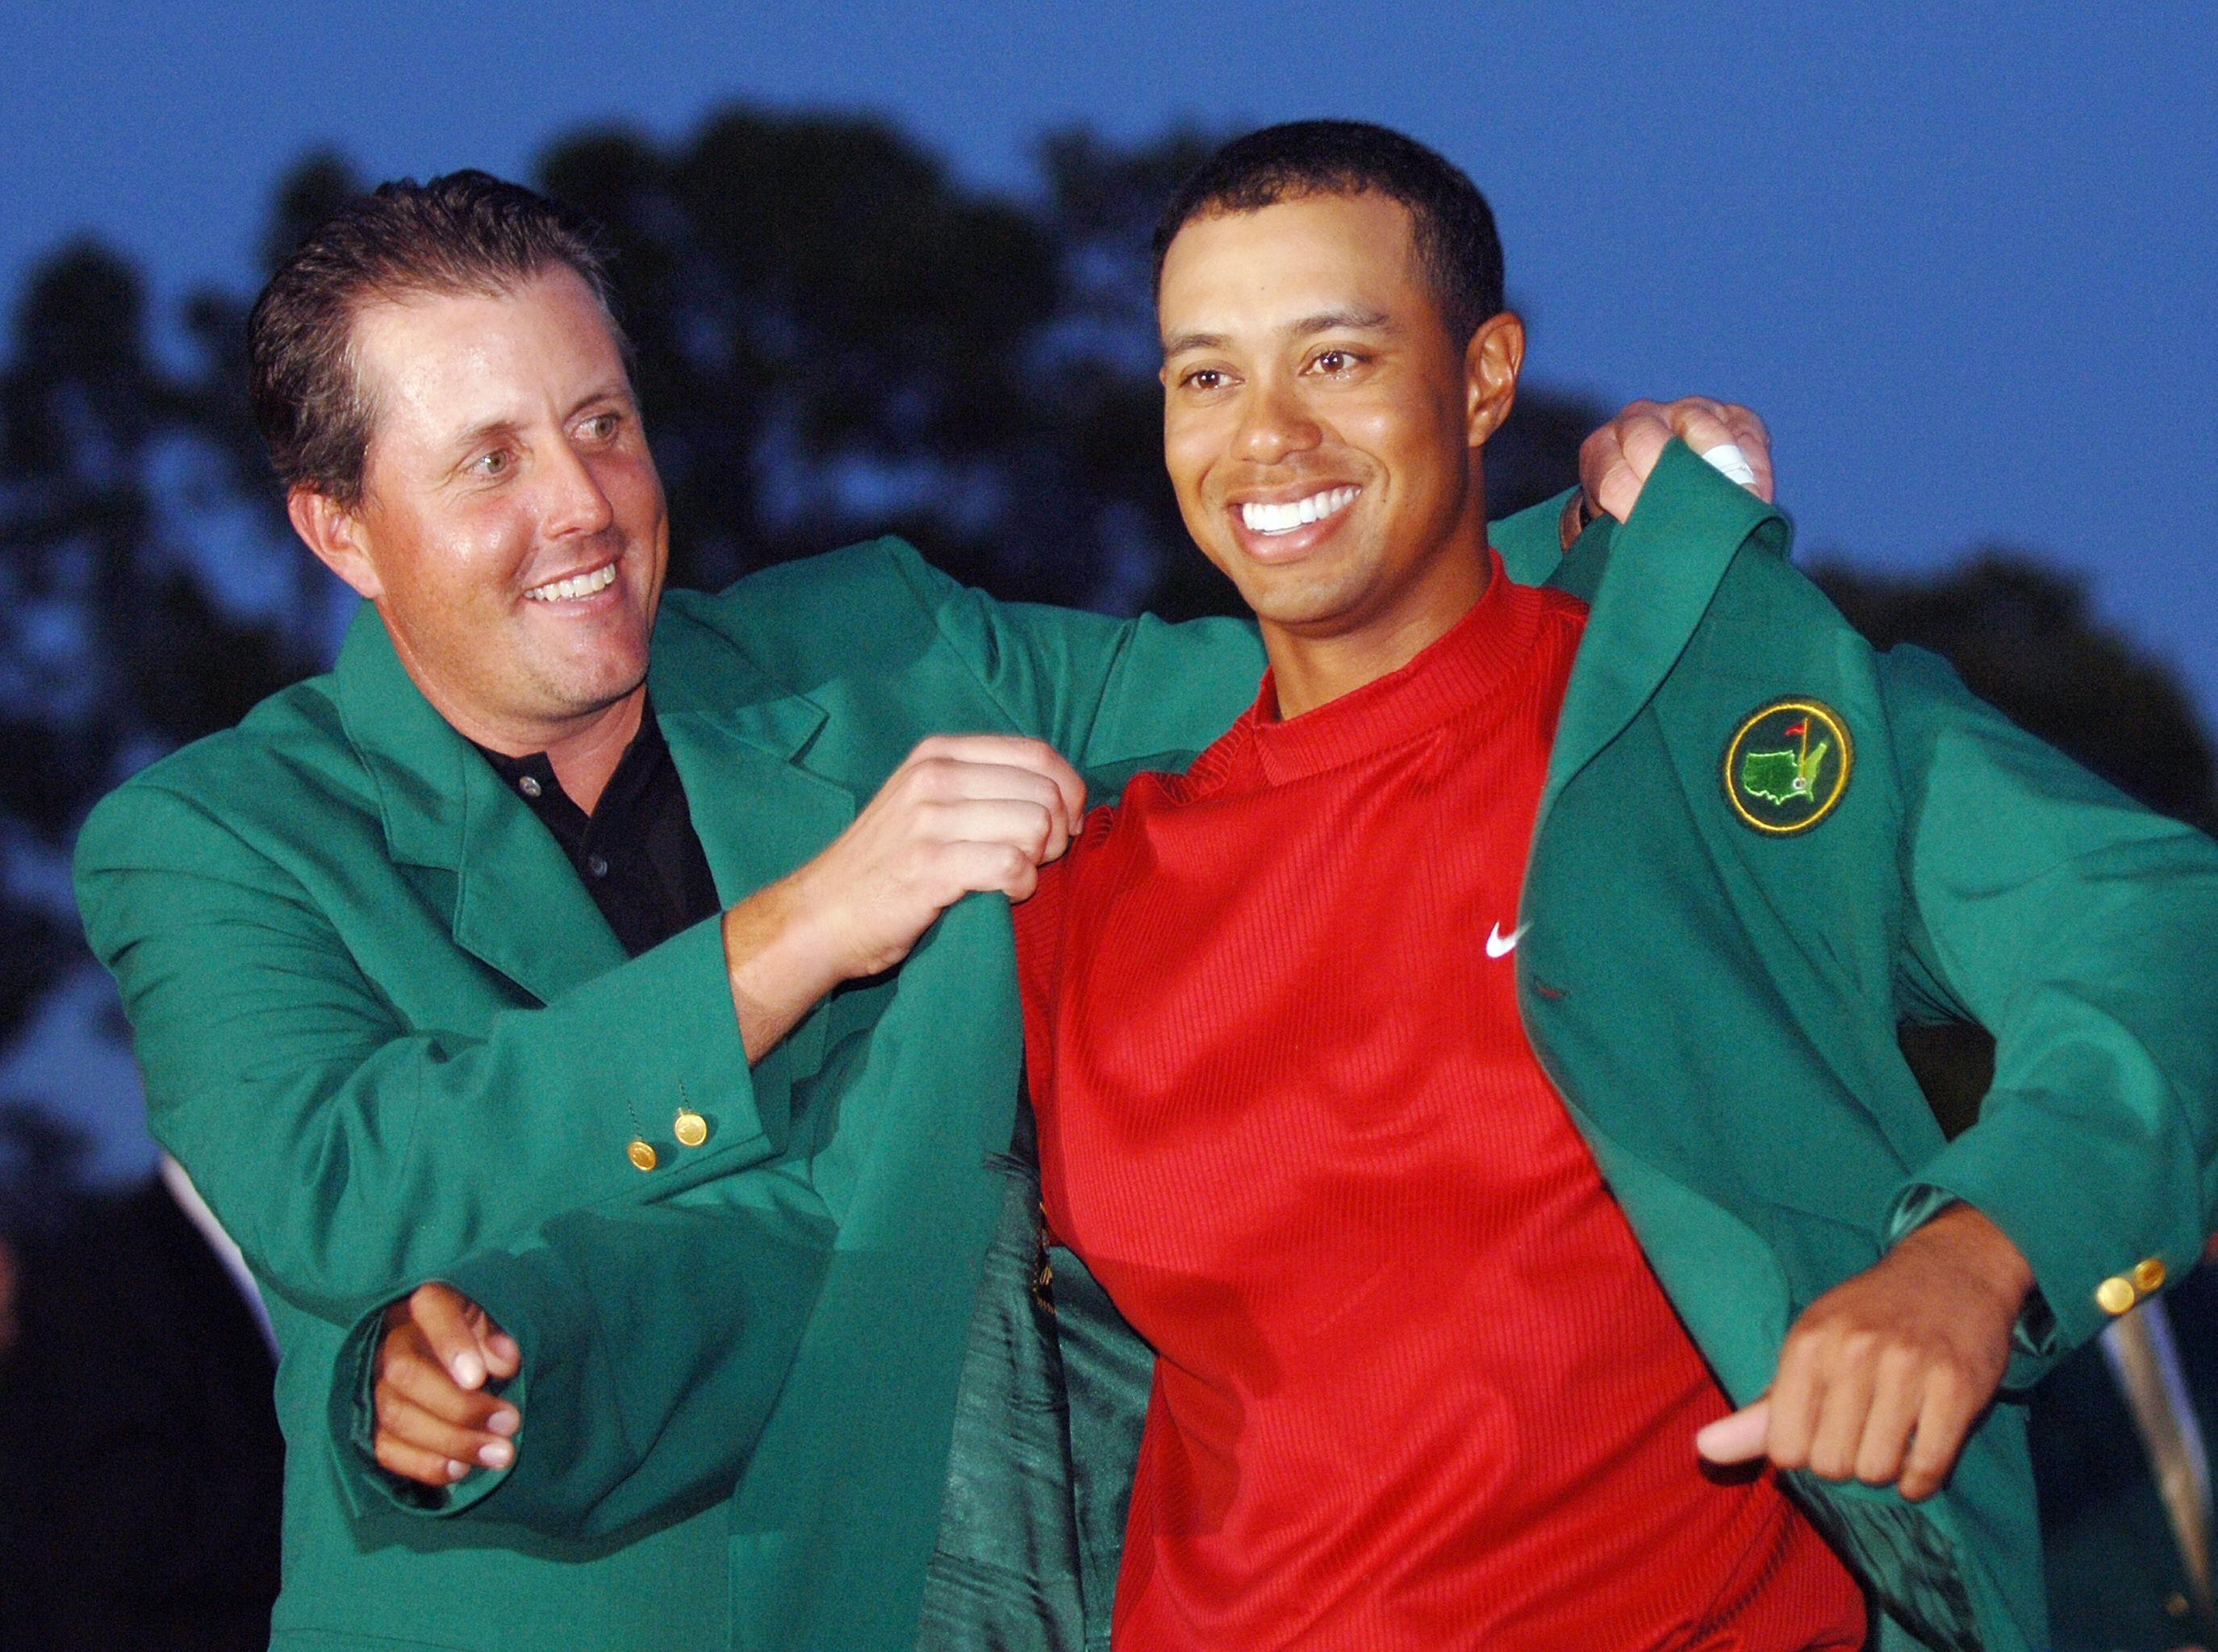 Tiger Woods has not won the Masters since 2005